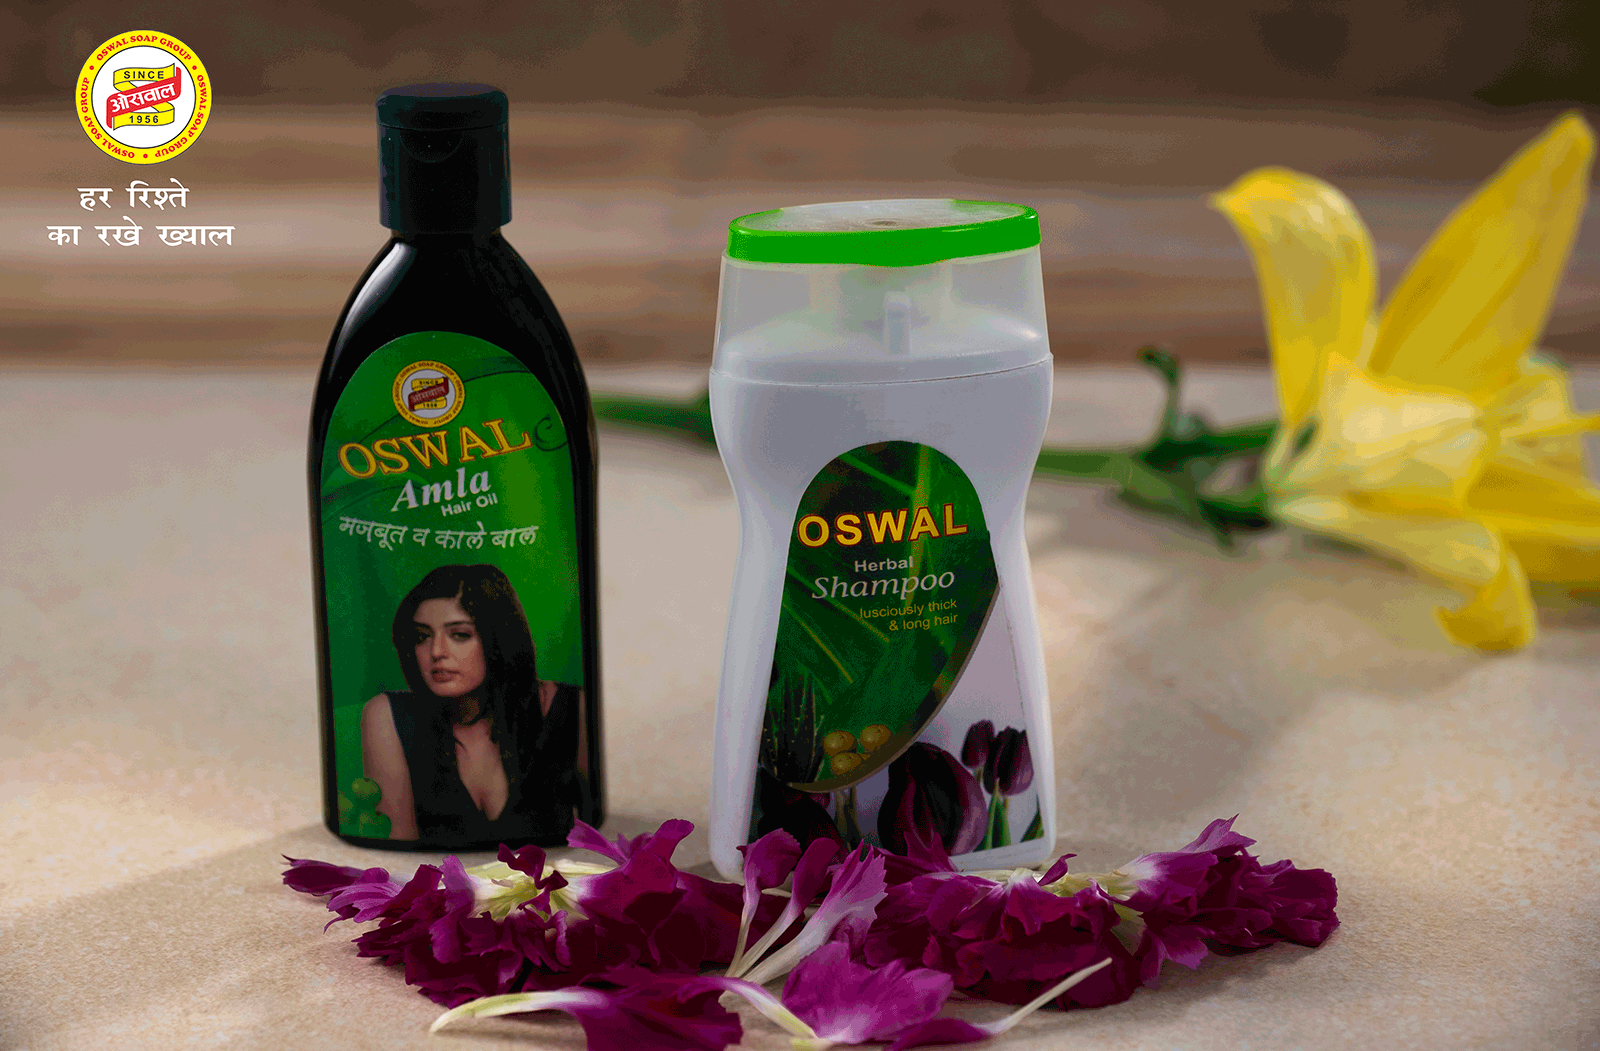 Oswal Hair Oil And Shampoo